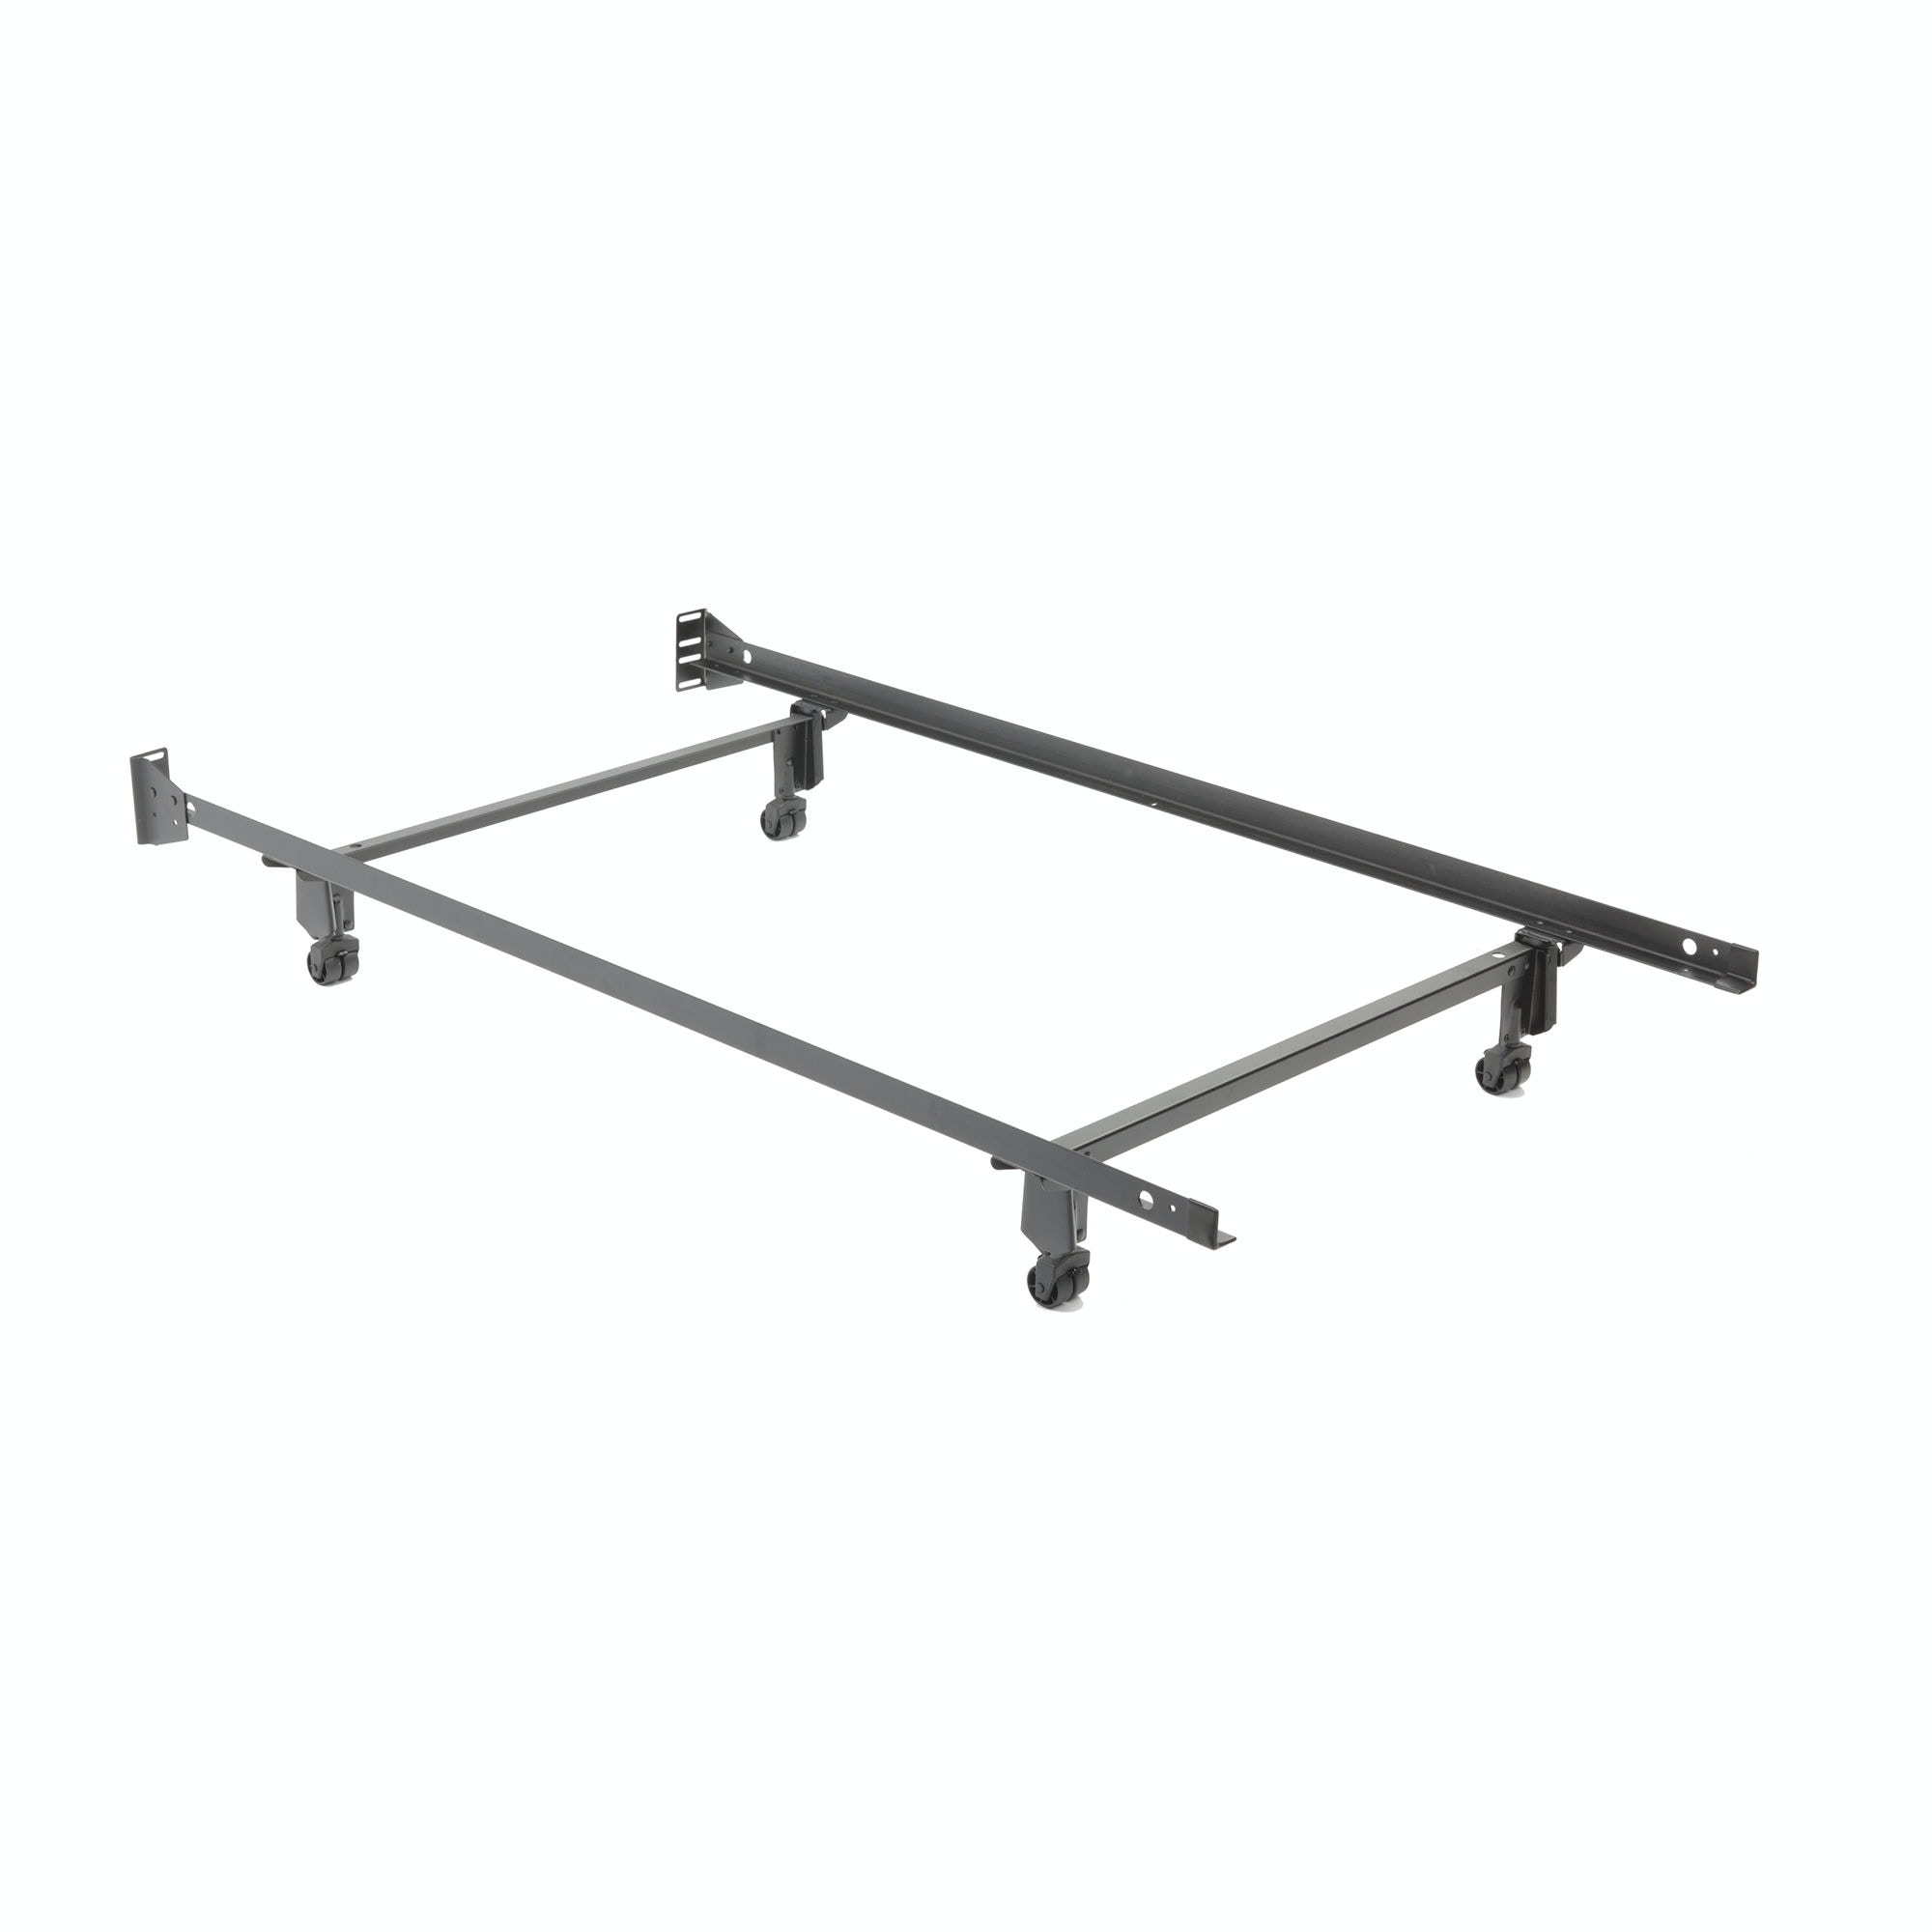 Fashion Bed Group Mattresses Inst A Matic Premium 738r Bed Frame